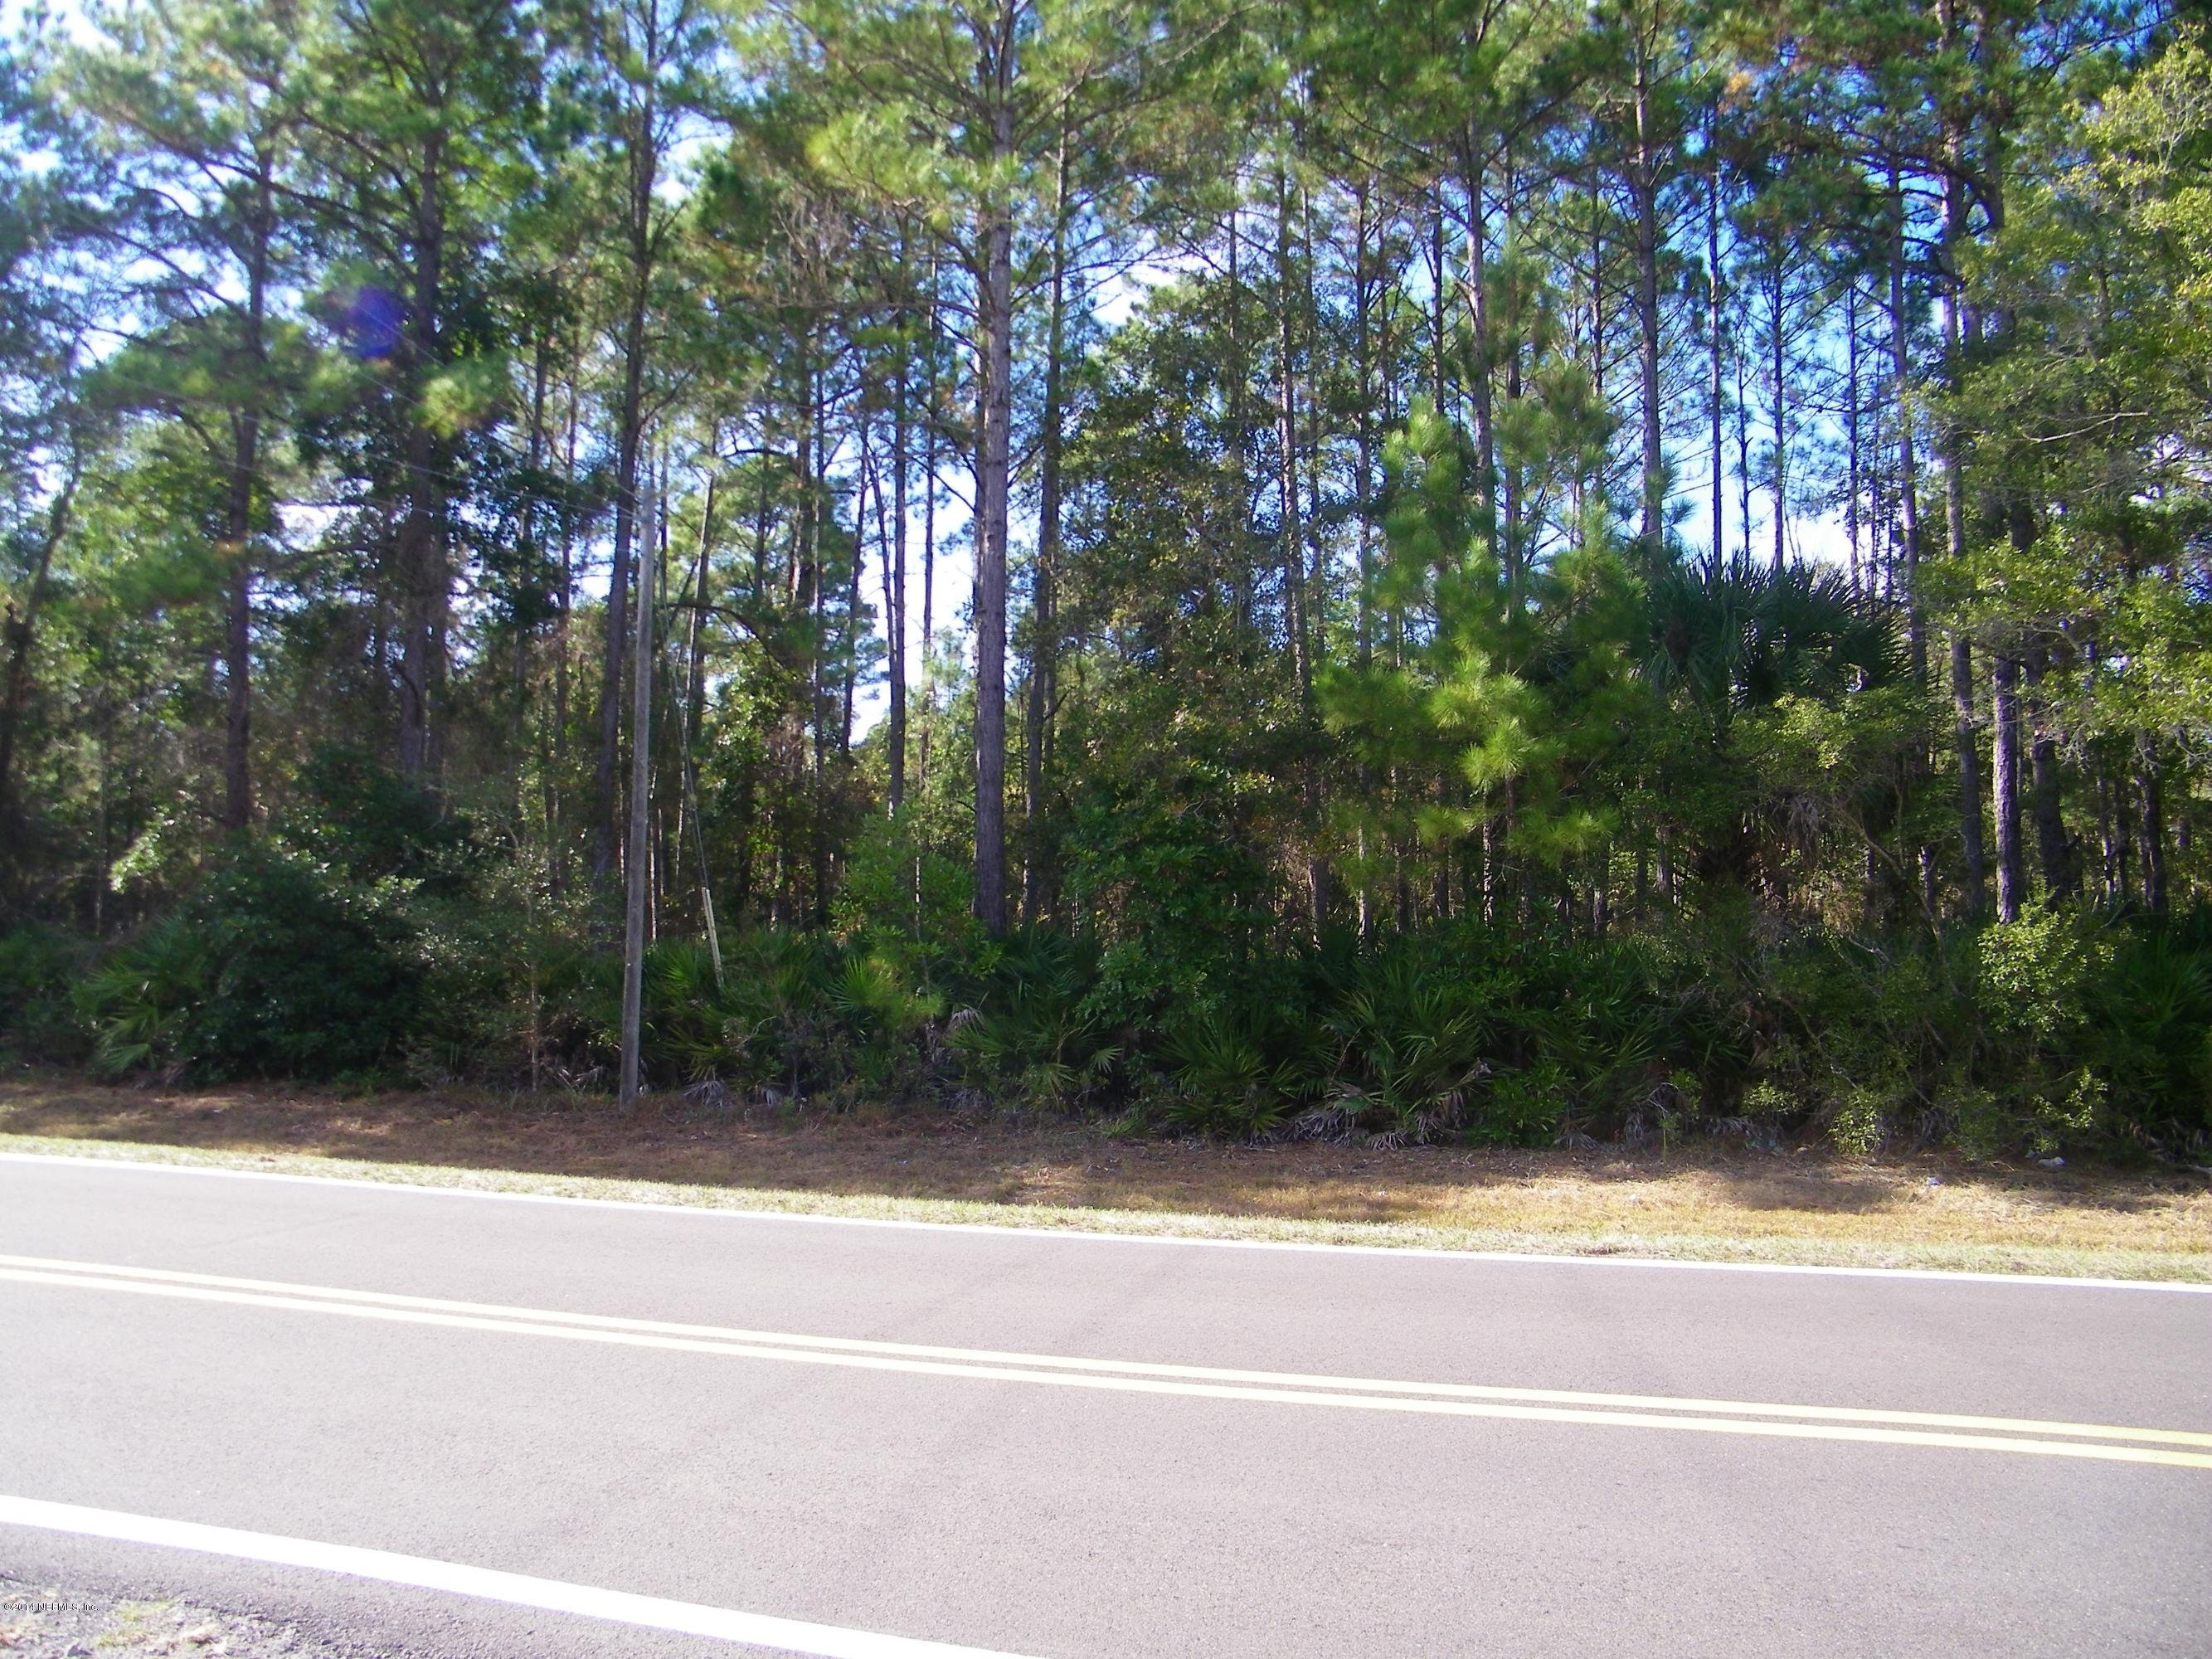 0 BLACKROCK, YULEE, FLORIDA 32097, ,Vacant land,For sale,BLACKROCK,749039